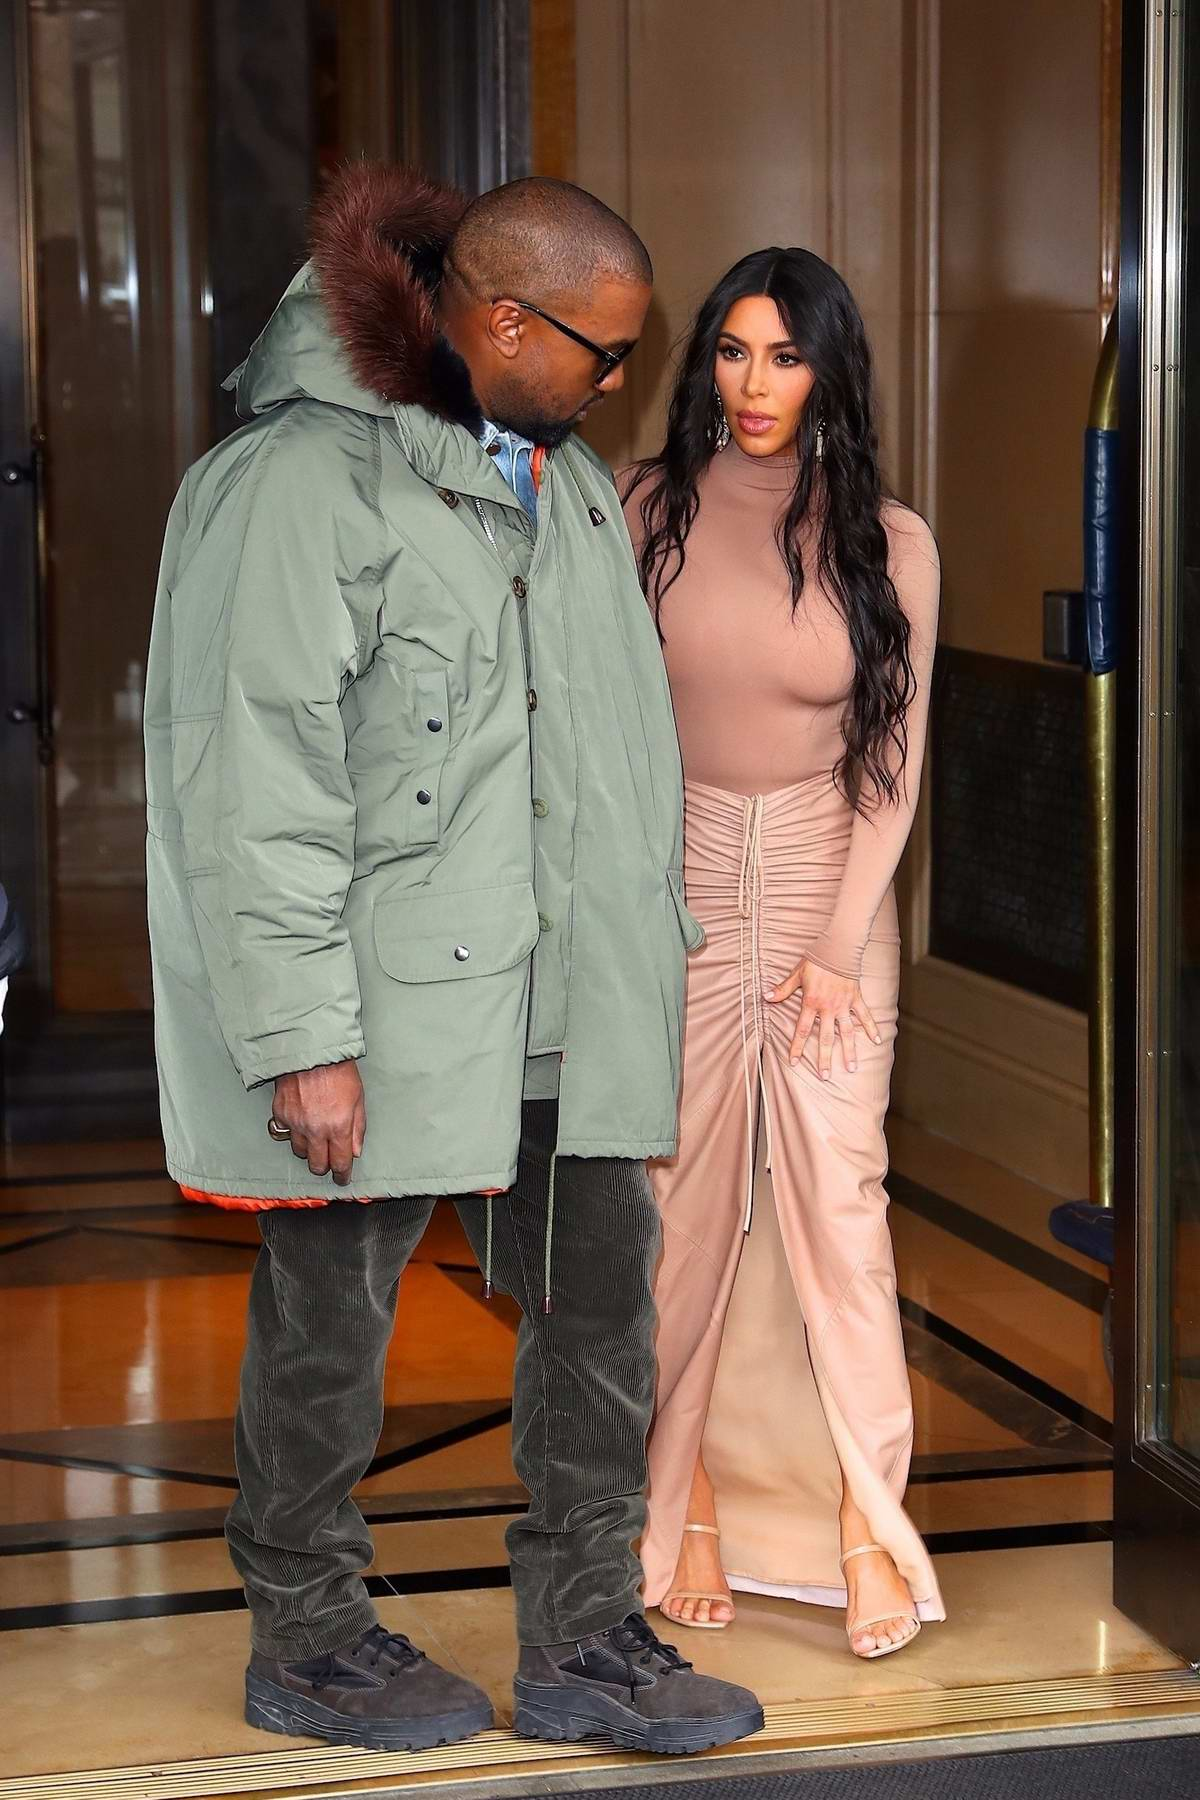 Kim Kardashian and Kanye West leave their hotel and head to the SKIMS launch event at Nordstrom in New York City